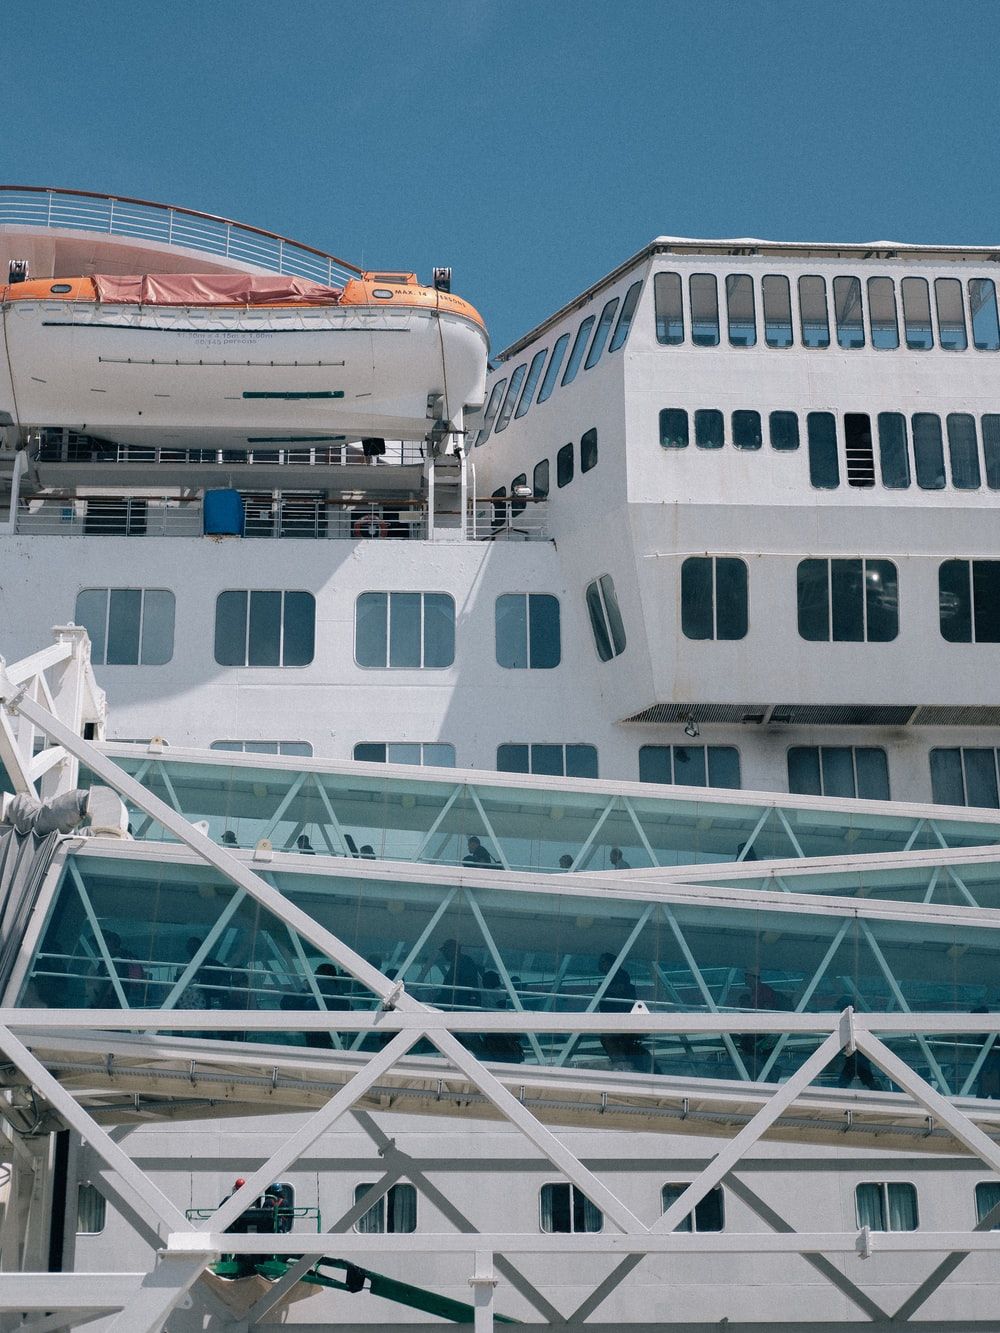 architectural photography of white cruise ship